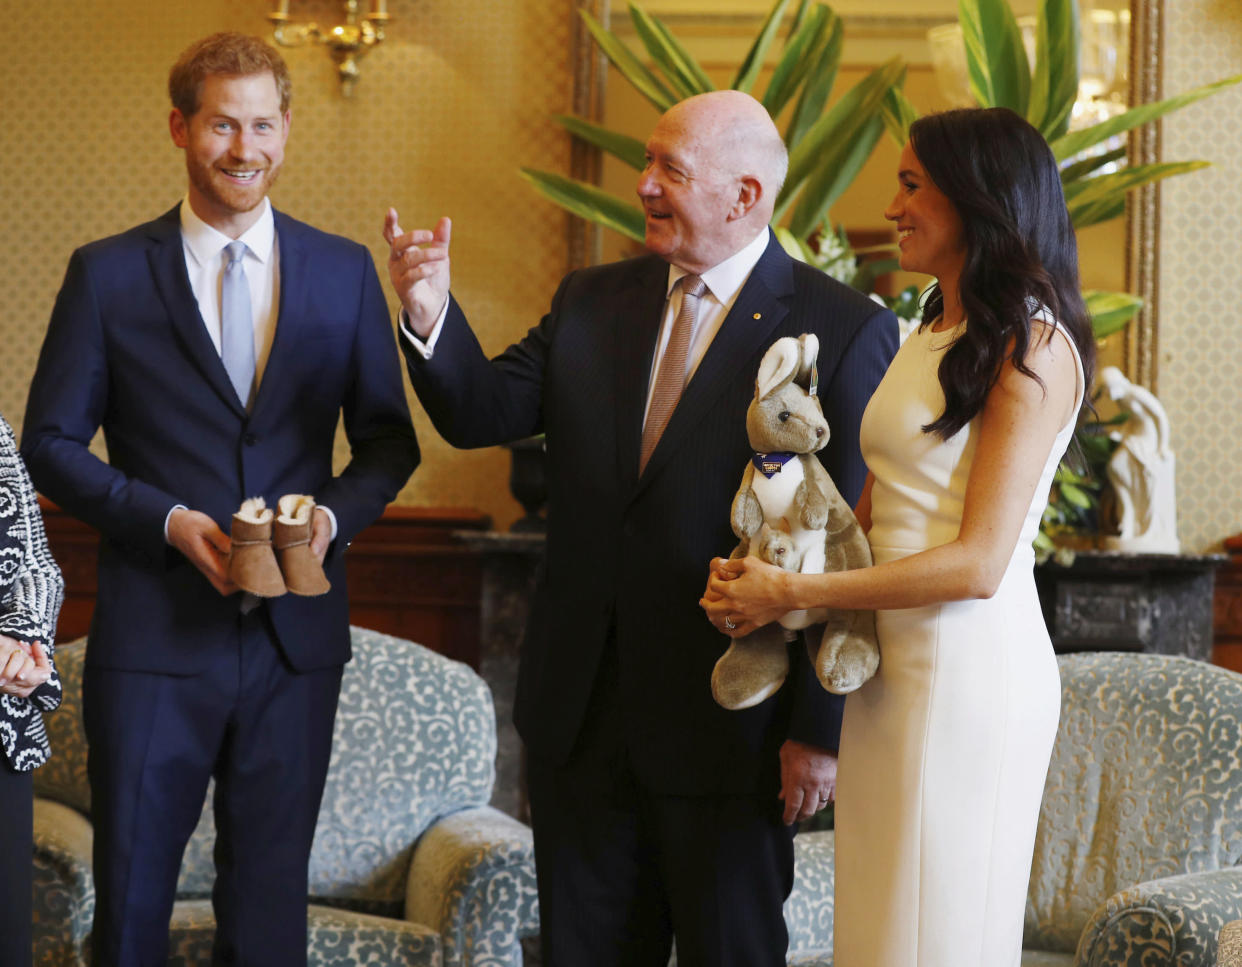 The couple were given a toy wallaby. Photo: AAP